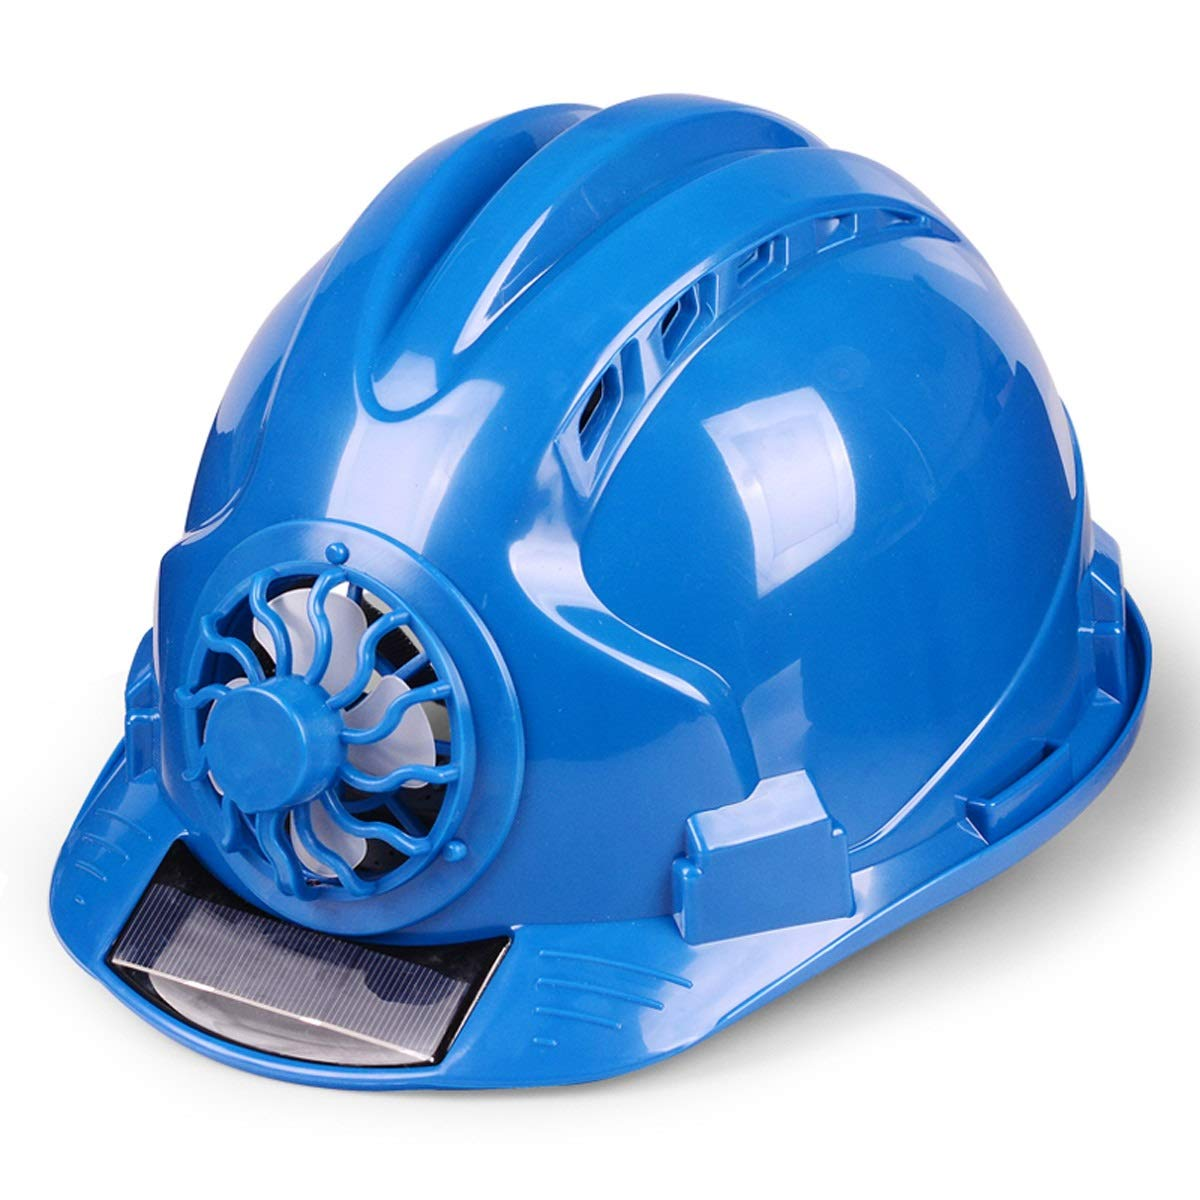 Adjustable Construction Helmet With 'Solar Fan' Vents-Meets ANSI Standards-Personal Protective Equipment, for Construction,Home Improvement And DIY Projects/PP (Color : Blue) by Tools-Hard Hats